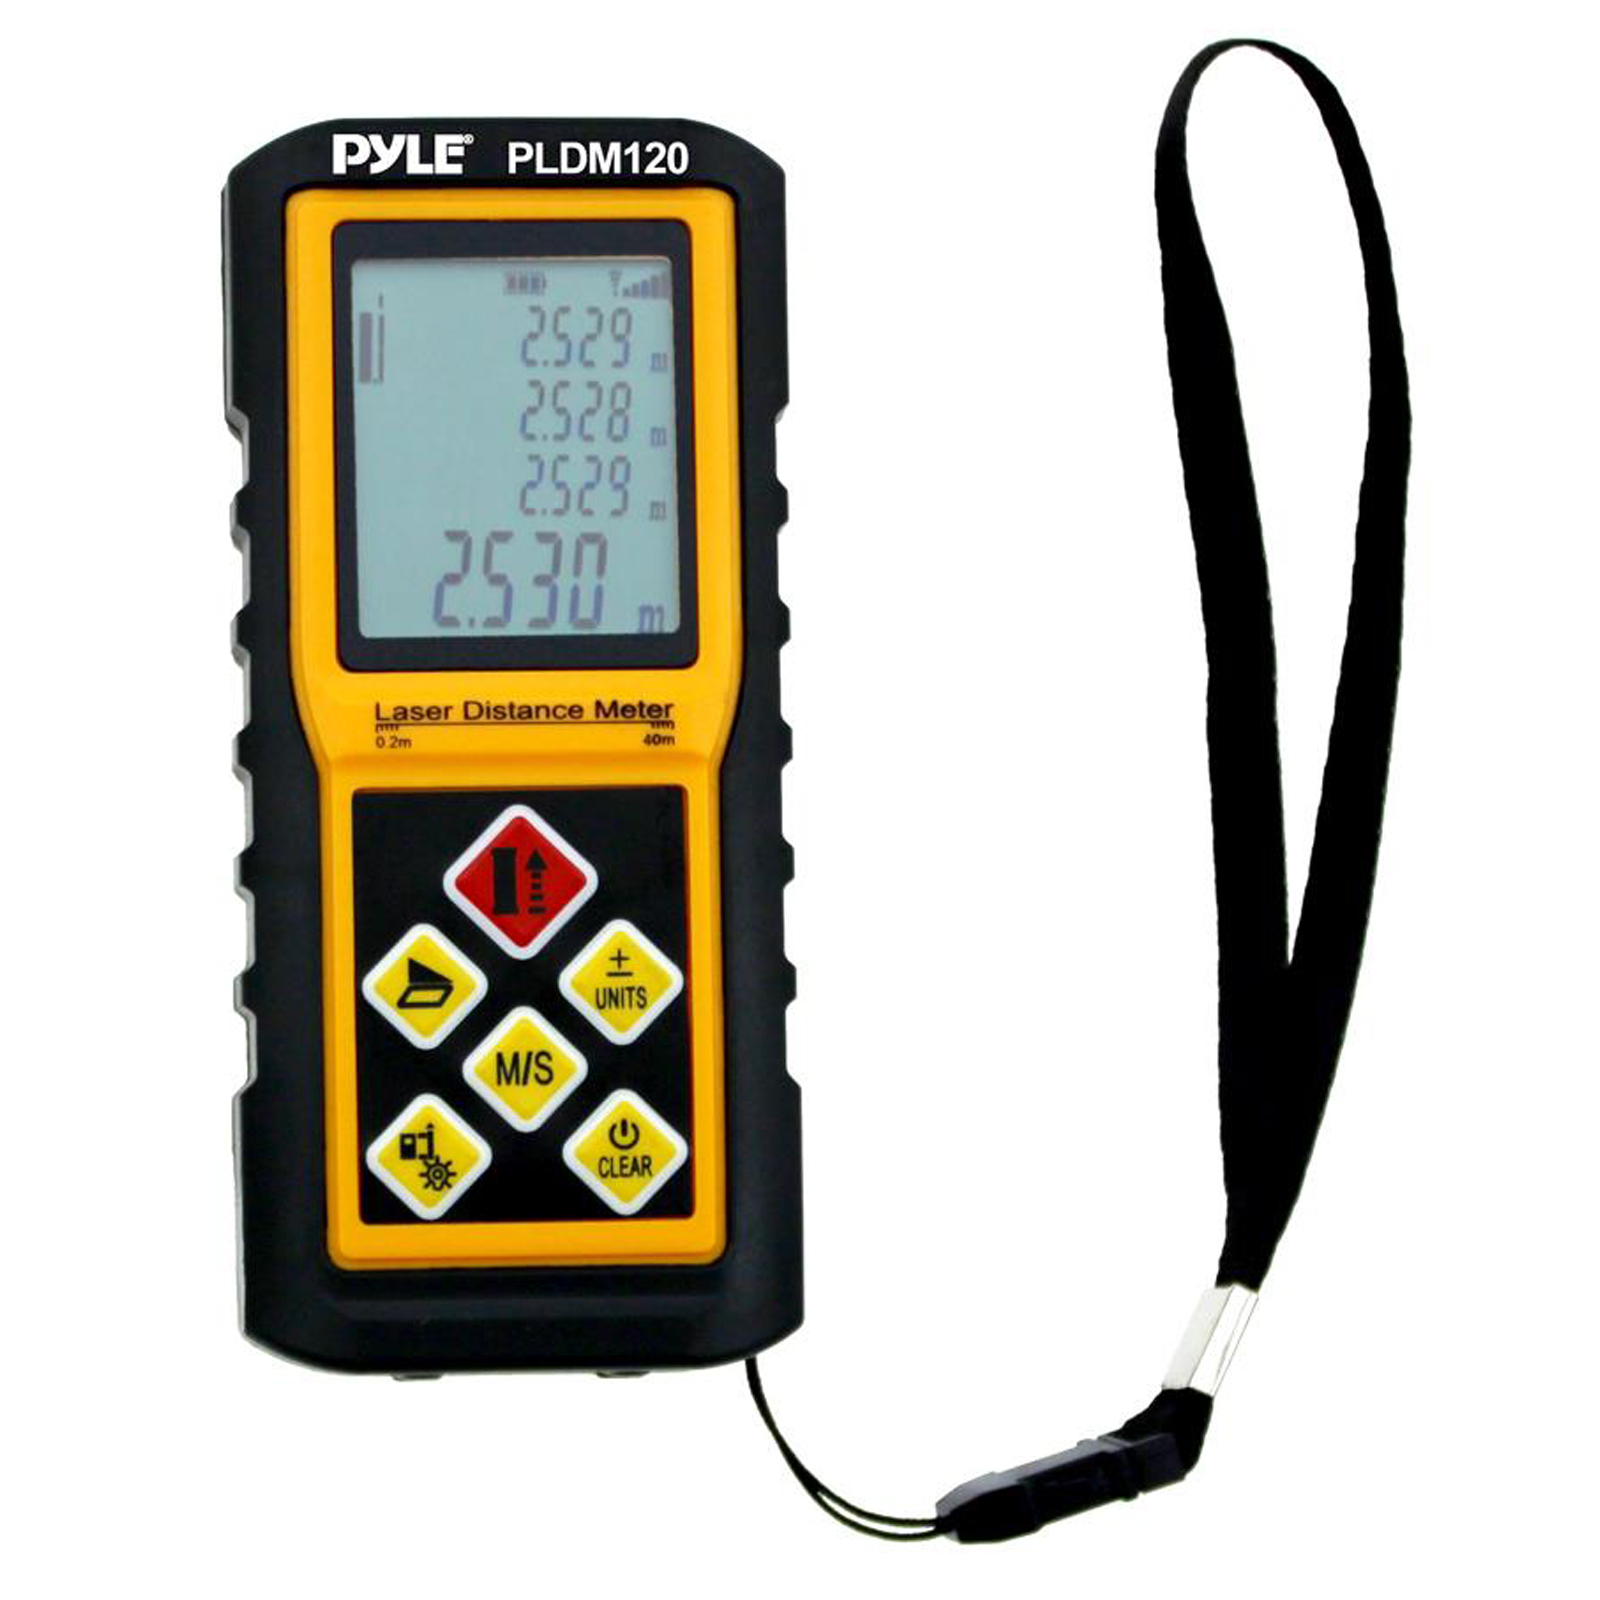 Pyle 300 Ft. Handheld Laser Distance Meter with Calculation, Tool Backlit LCD Display, Direct / Indirect, Volume and Area Measuring